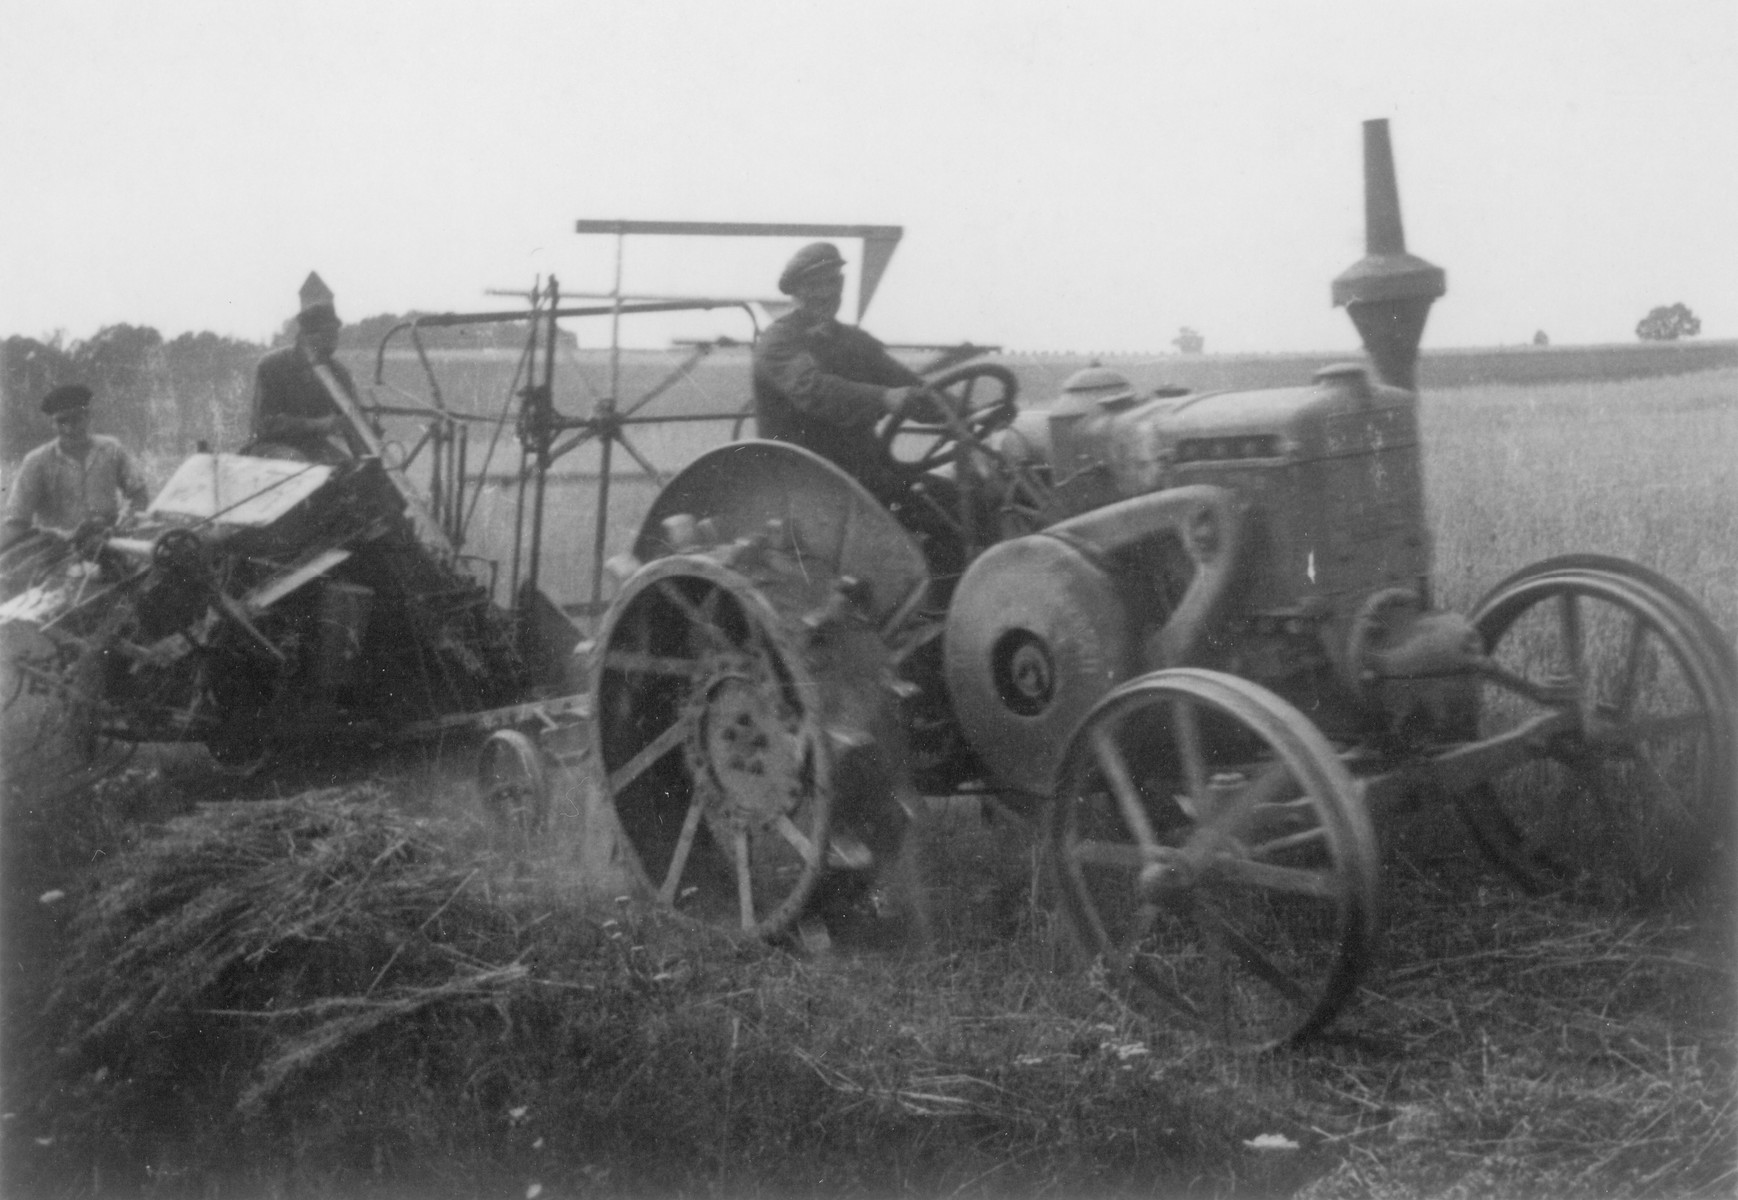 German Jewish youth learn agricultural skills in a training farm outside of Breslau.  Pictured from left to right are Pitt, Hans Wolfe, and Mr. Krause, who was not Jewish.